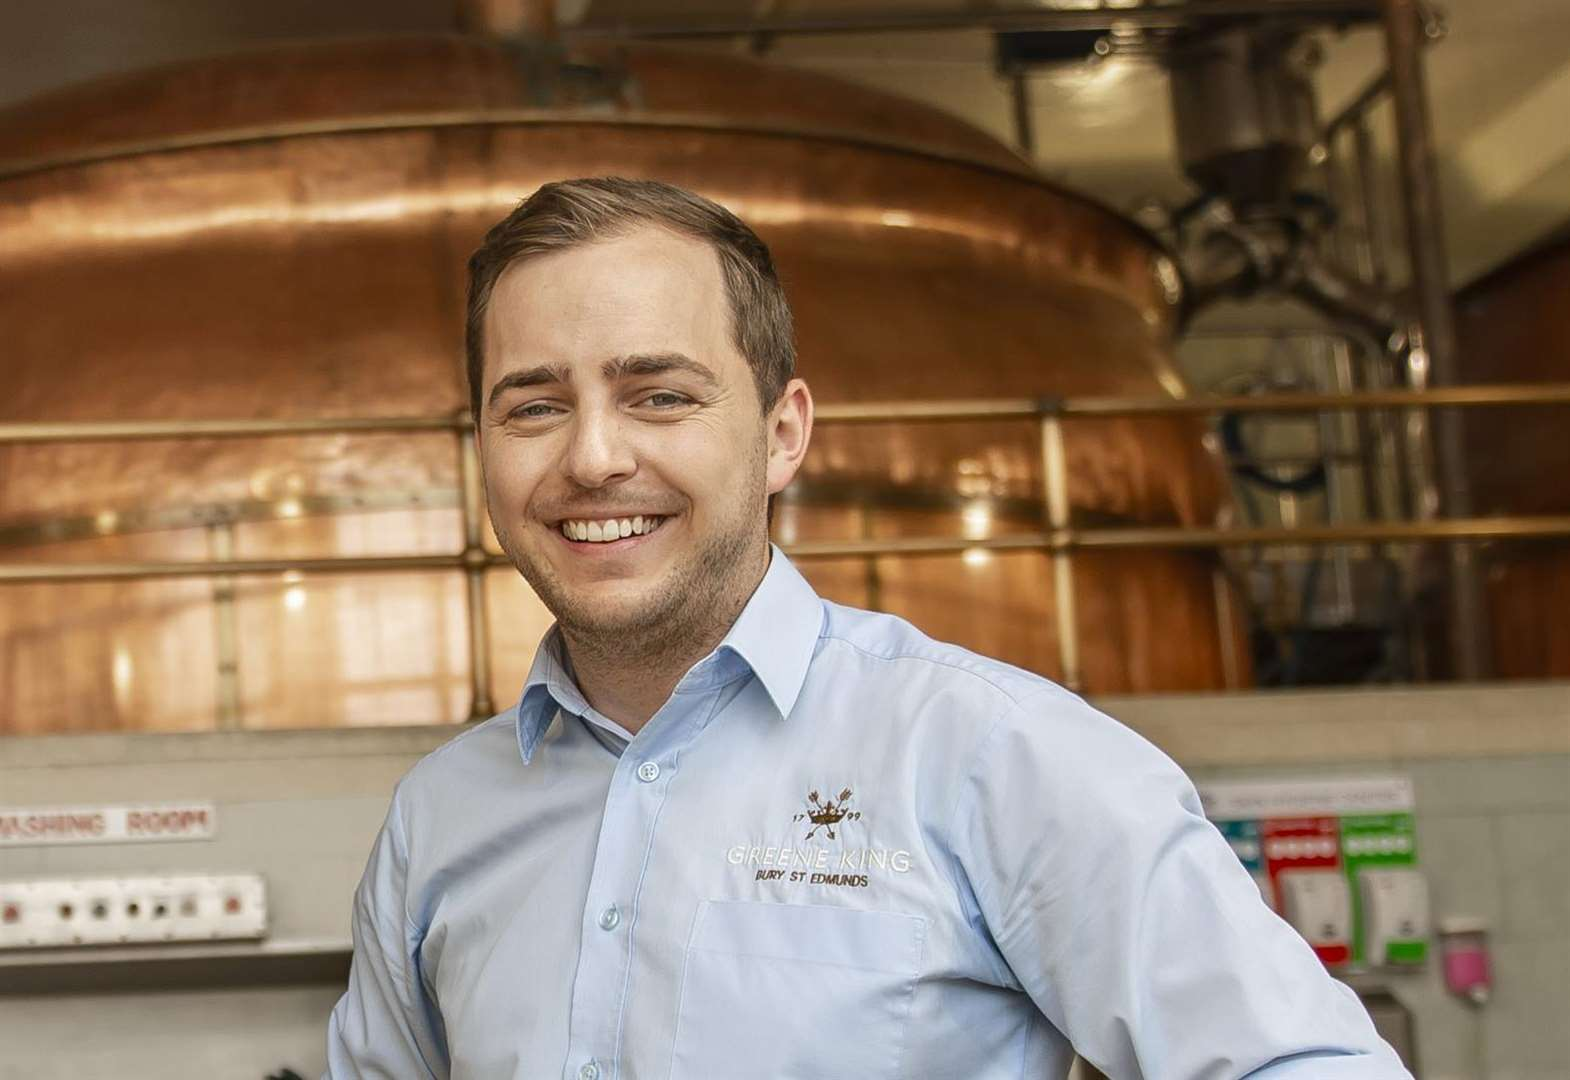 Greene King's Ross is youngest Master Brewer in the world